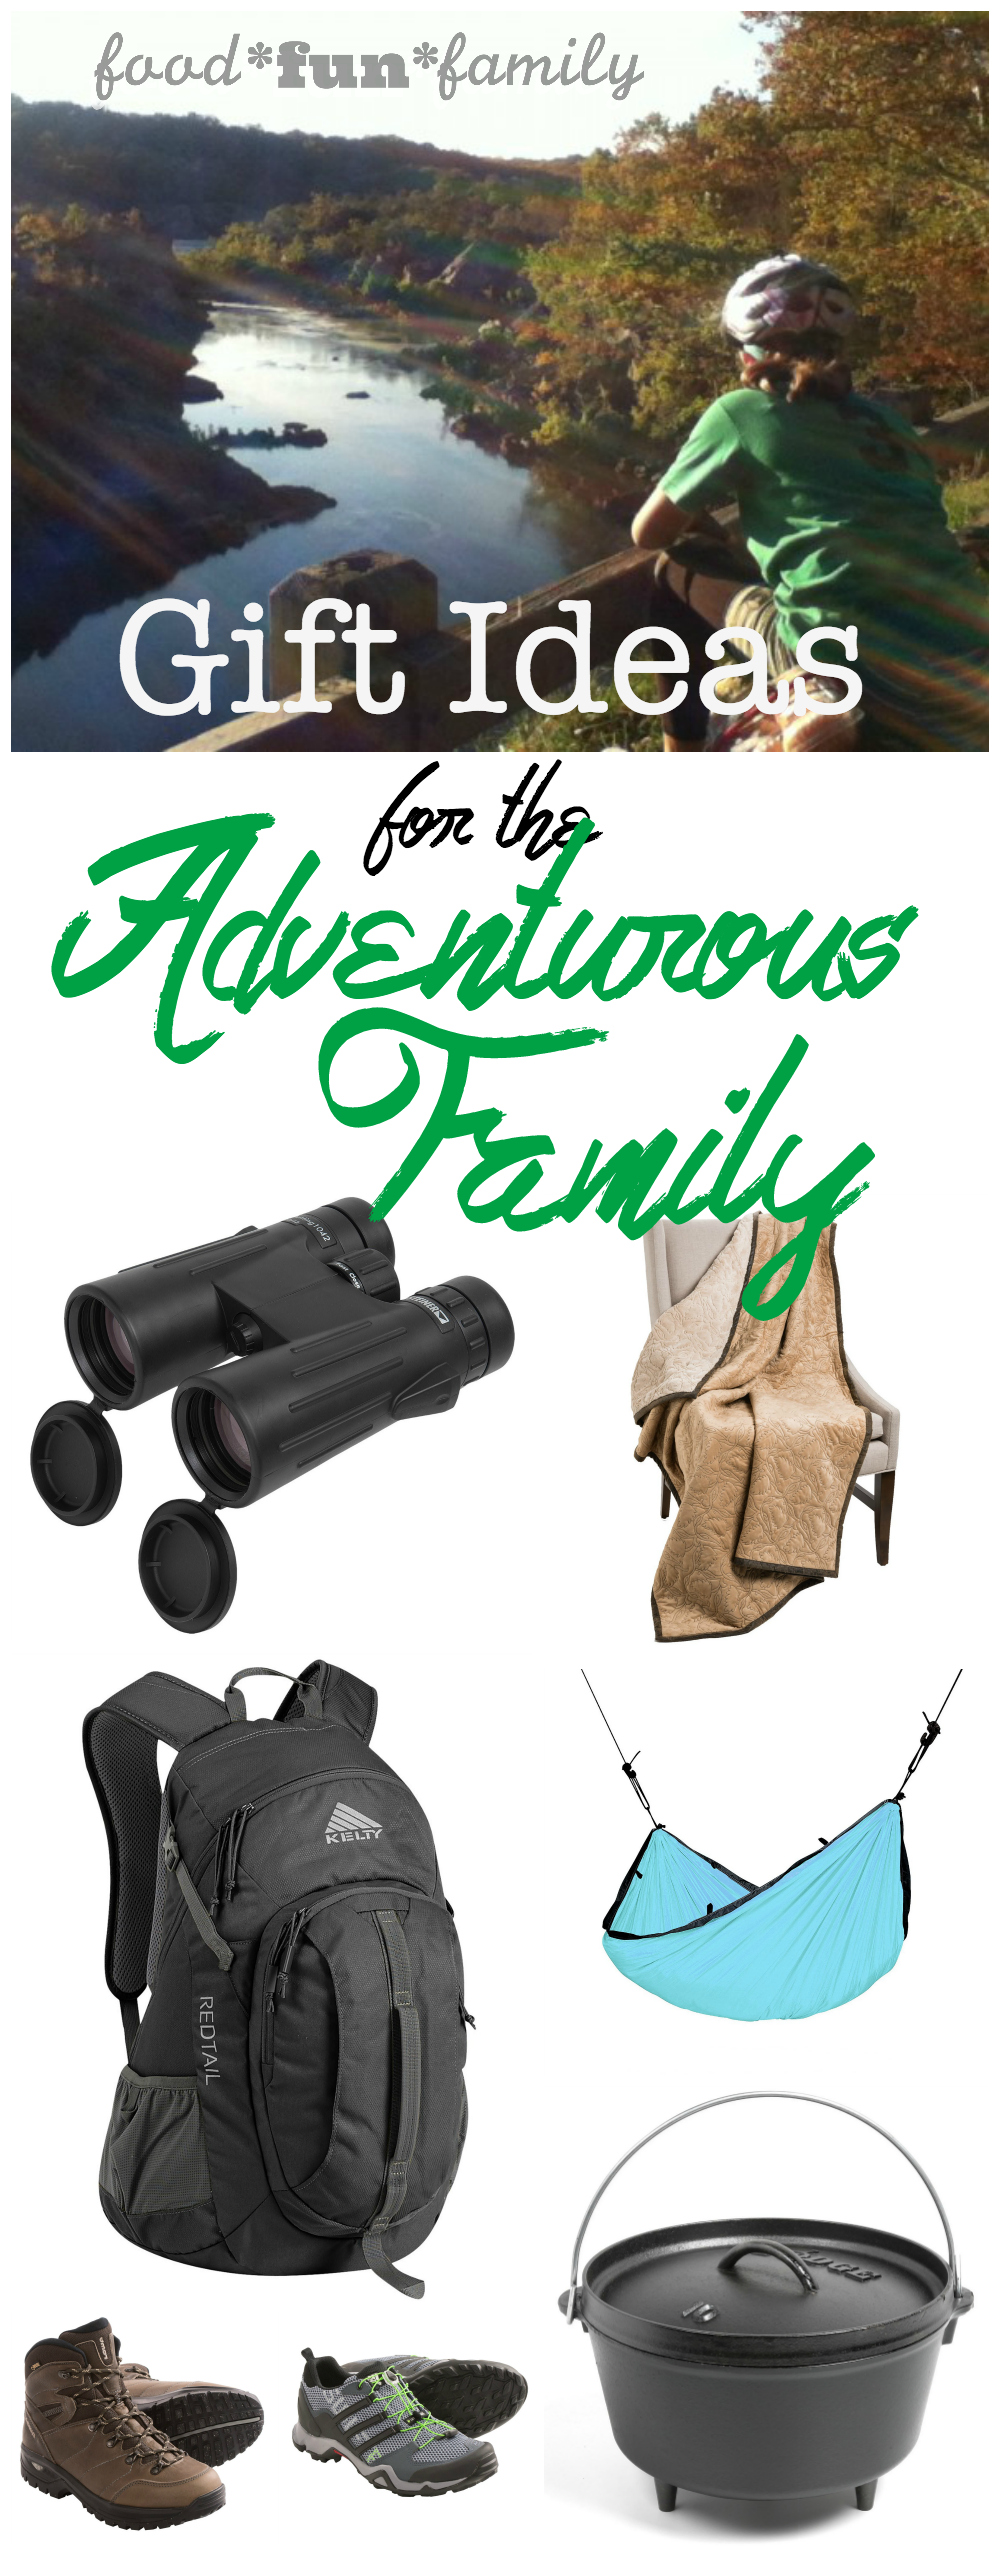 Gift ideas for the Adventurous Family from Food Fun Family